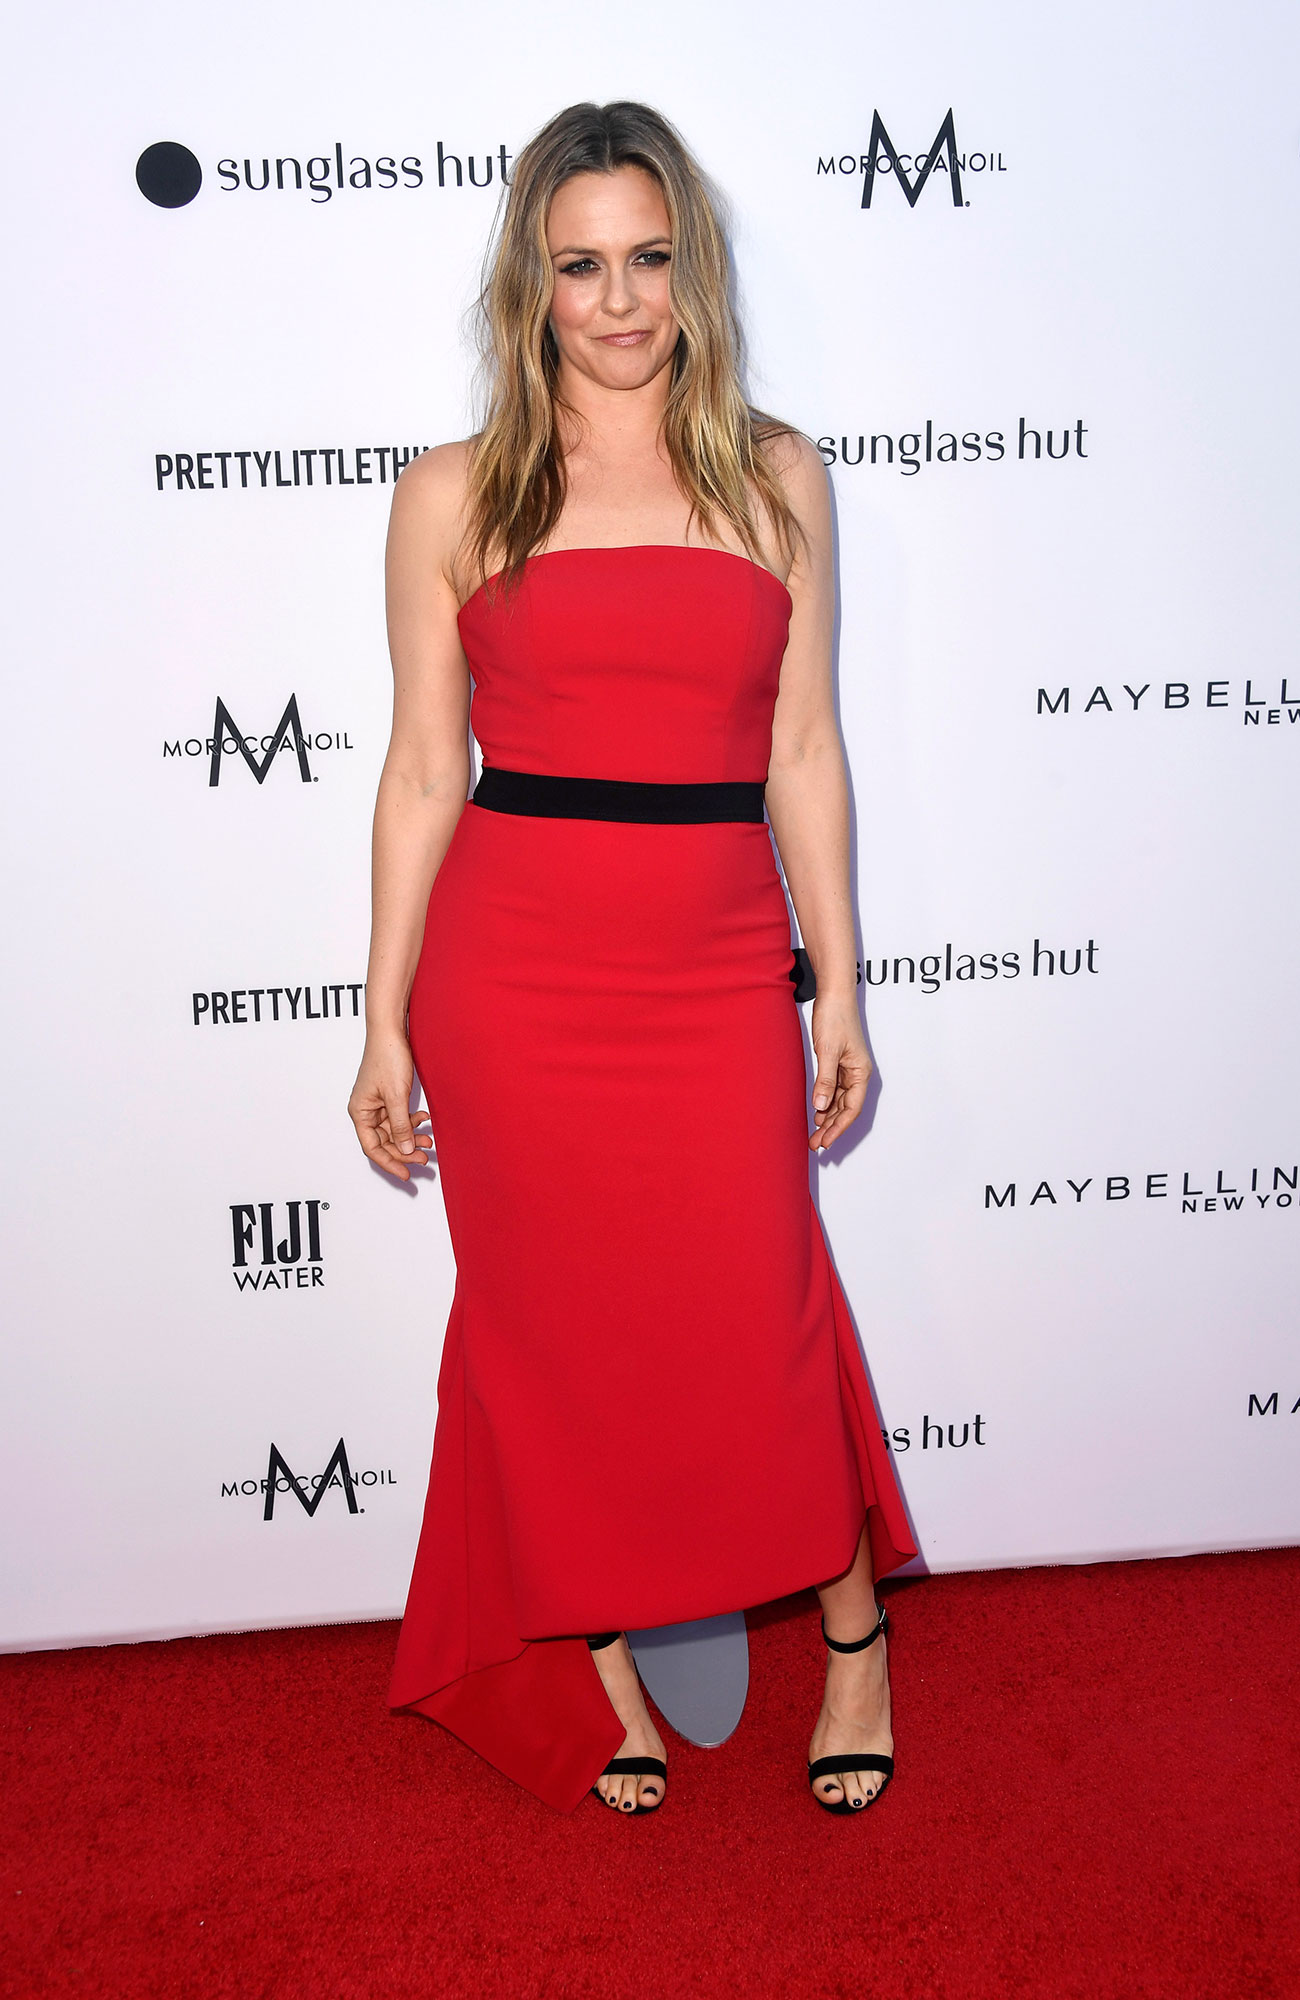 Stars Brought Their Style A-Game to the Daily Front Row Fashion Awards - The Clueless star looked ageless in a strapless red dress with a black bow around the waist the matched her simple sandal heels.